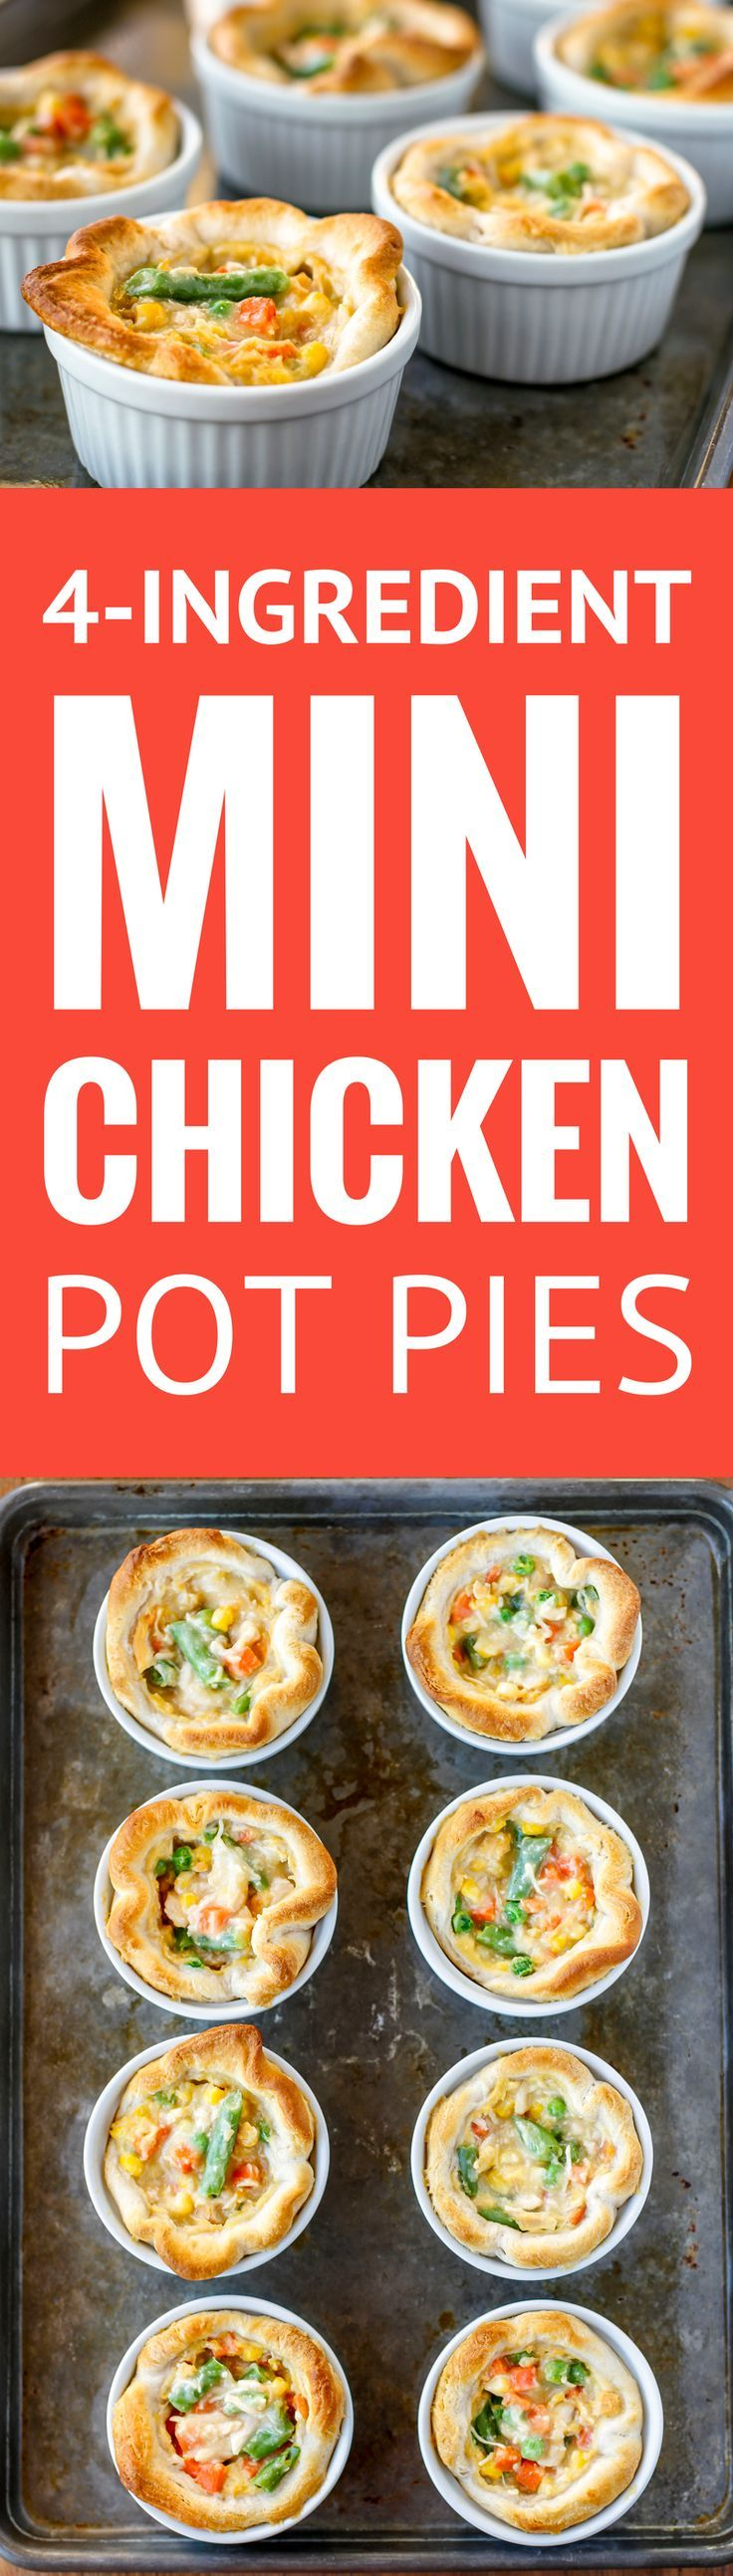 Mini Chicken Pot Pies -- packed with loads of mixed veggies and diced chicken, these 4-ingredient mini chicken pot pies are a fantastically quick and easy weeknight meal! I love baking them in individual ramekins for easy serving. | easy chicken pot pies | chicken pot pies recipe | chicken pot pies with biscuits | chicken pot pies pillsbury | 30 minute meal idea | find the recipe on unsophisticook.com #chickendinner #chickenrecipes #easyrecipe #comfortfood